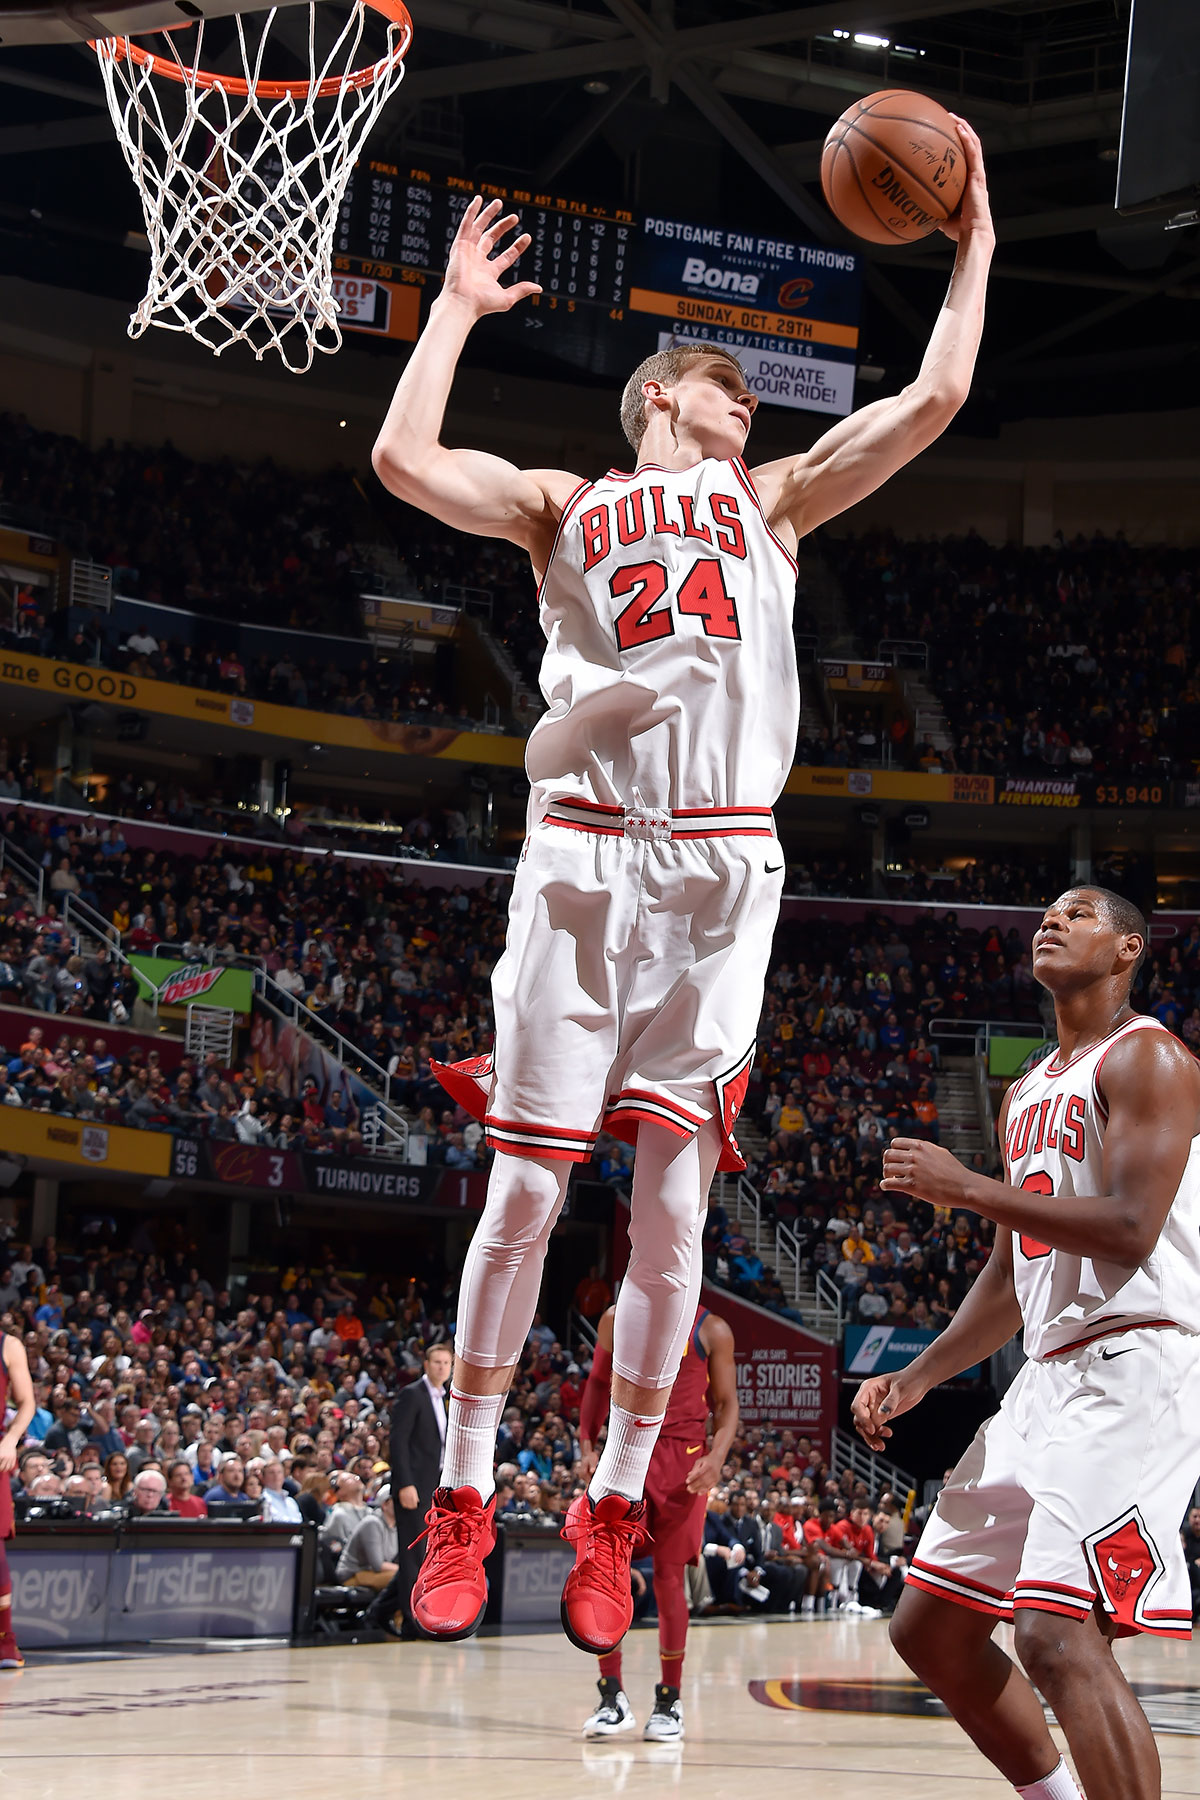 Lauri Markkanen #24 of the Chicago Bulls handles the ball against the Cleveland Cavaliers on October 24, 2017 at Quicken Loans Arena in Cleveland, Ohio.